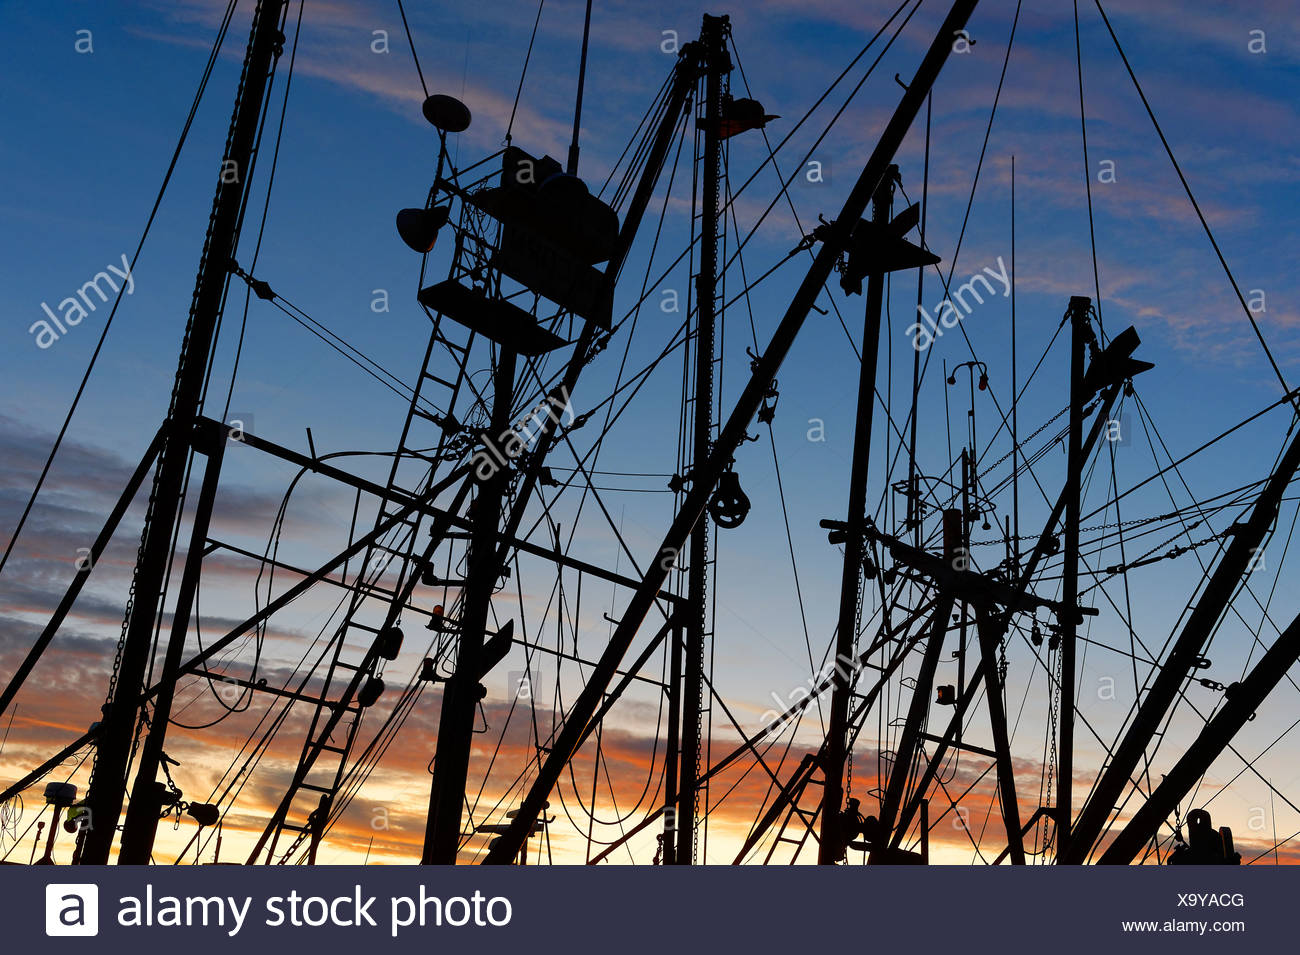 Commercial fishing boat. - Stock Image